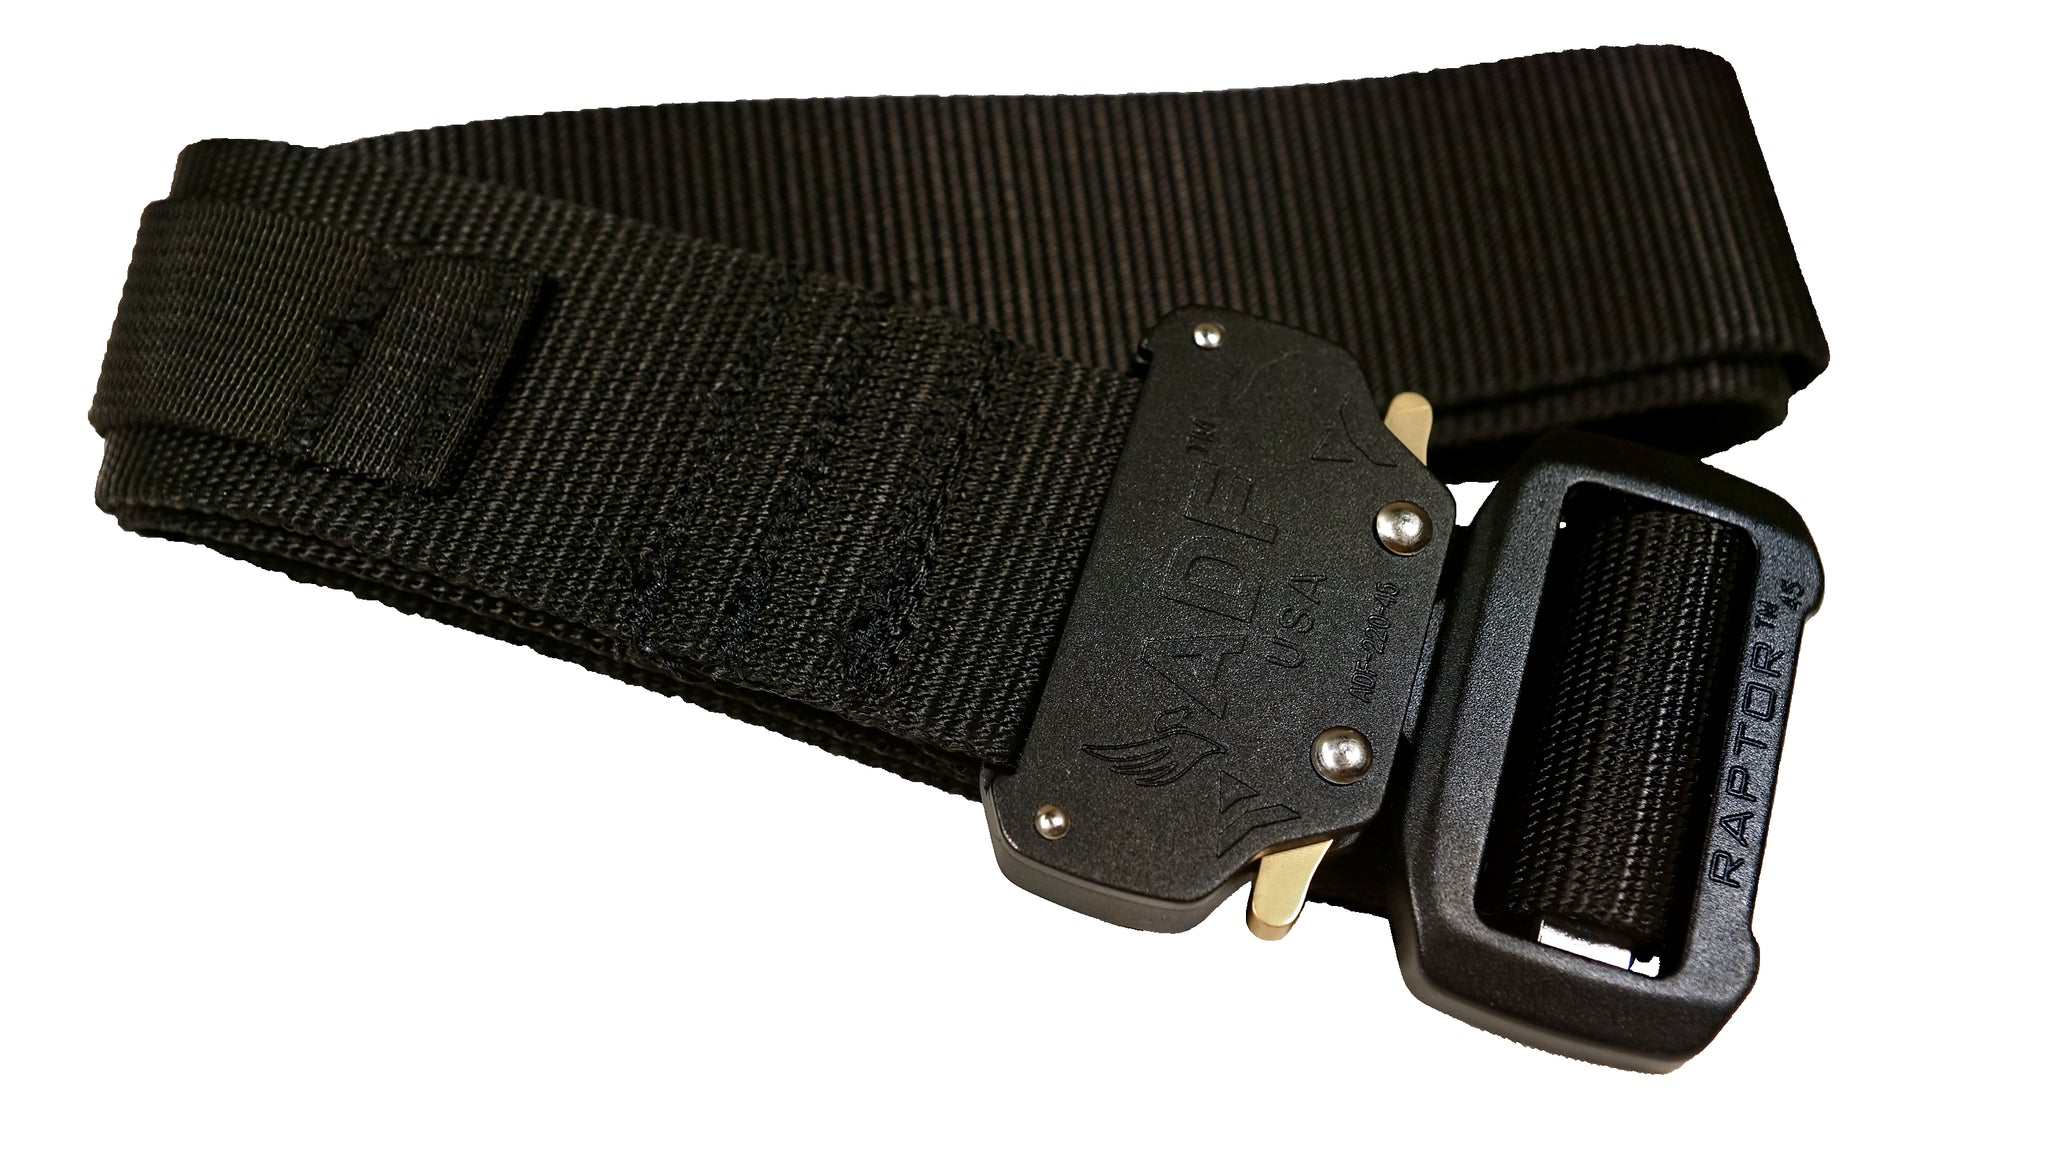 Black rigger's style belt with added nylon loop and metal hook to secure a ThermoLuminescent Dosimeter or TLD.